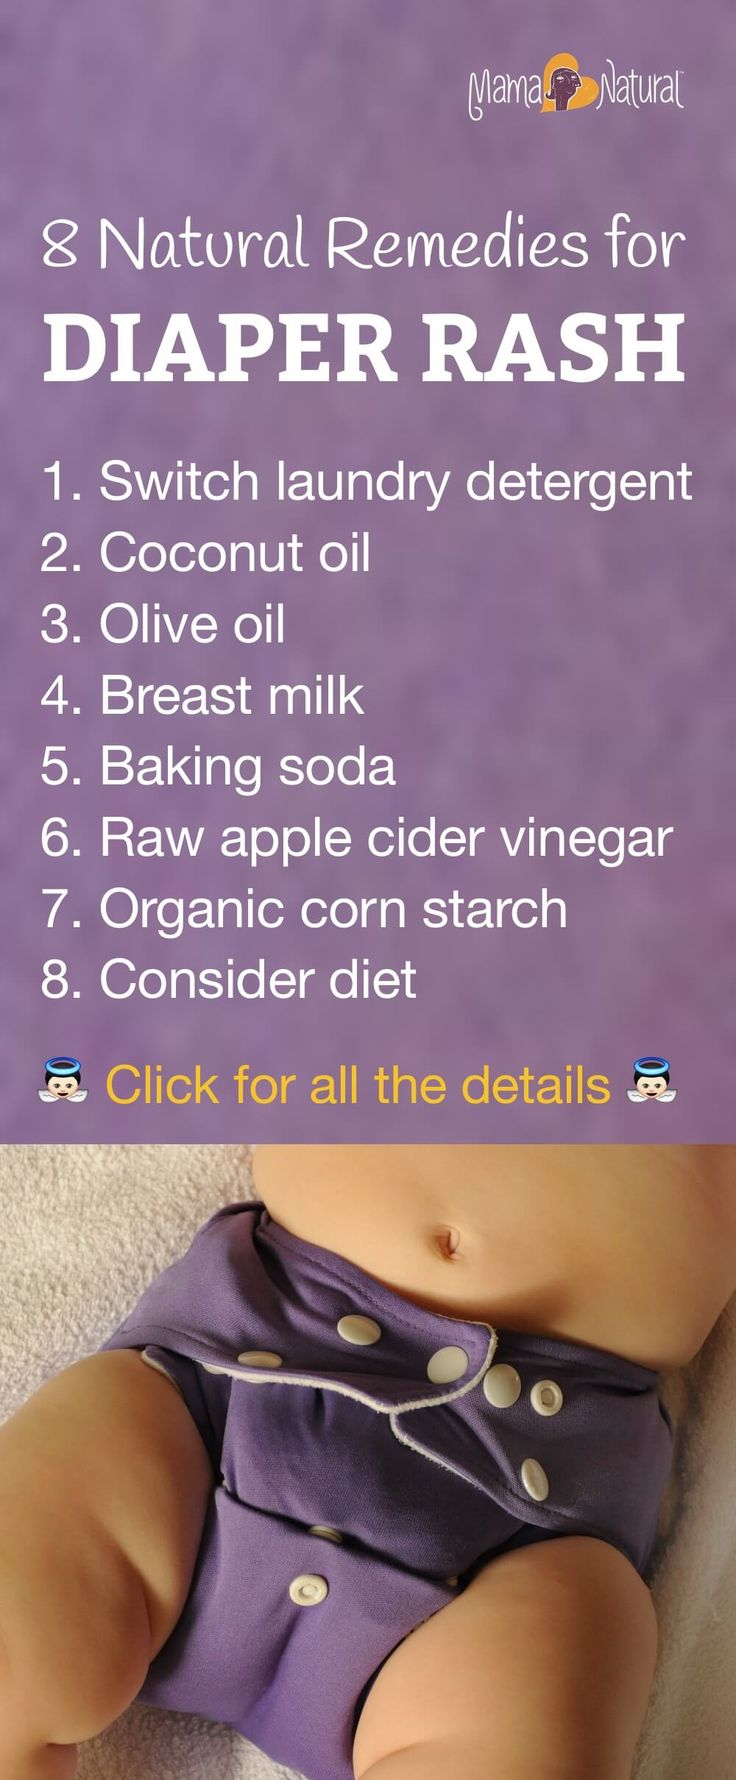 Diaper rash is par for the course with babies, but it doesn't have to be such a bummer. Here are some tips to naturally care for baby's diaper rash at home. http://www.mamanatural.com/diaper-rash/